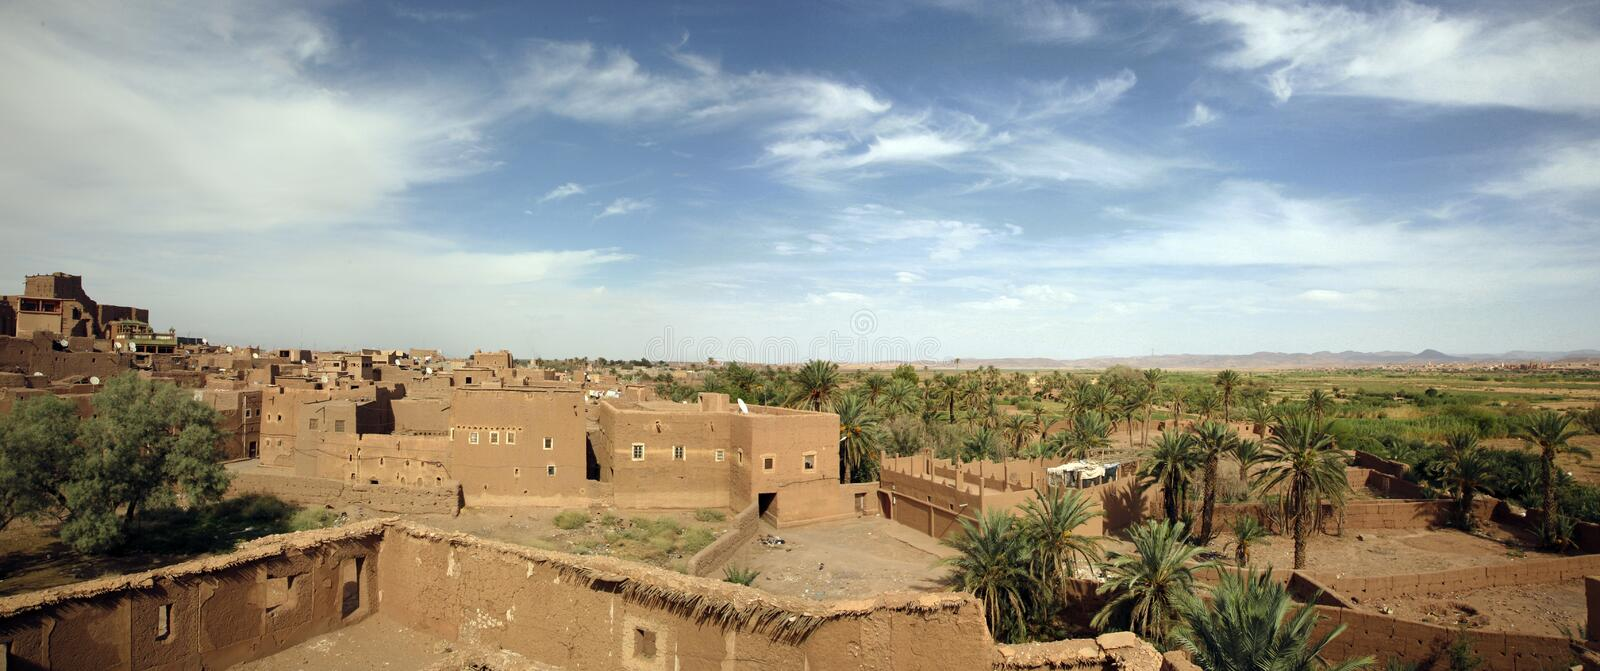 Ouarzazate. Oasis of ouarzazate in Morocco royalty free stock photography